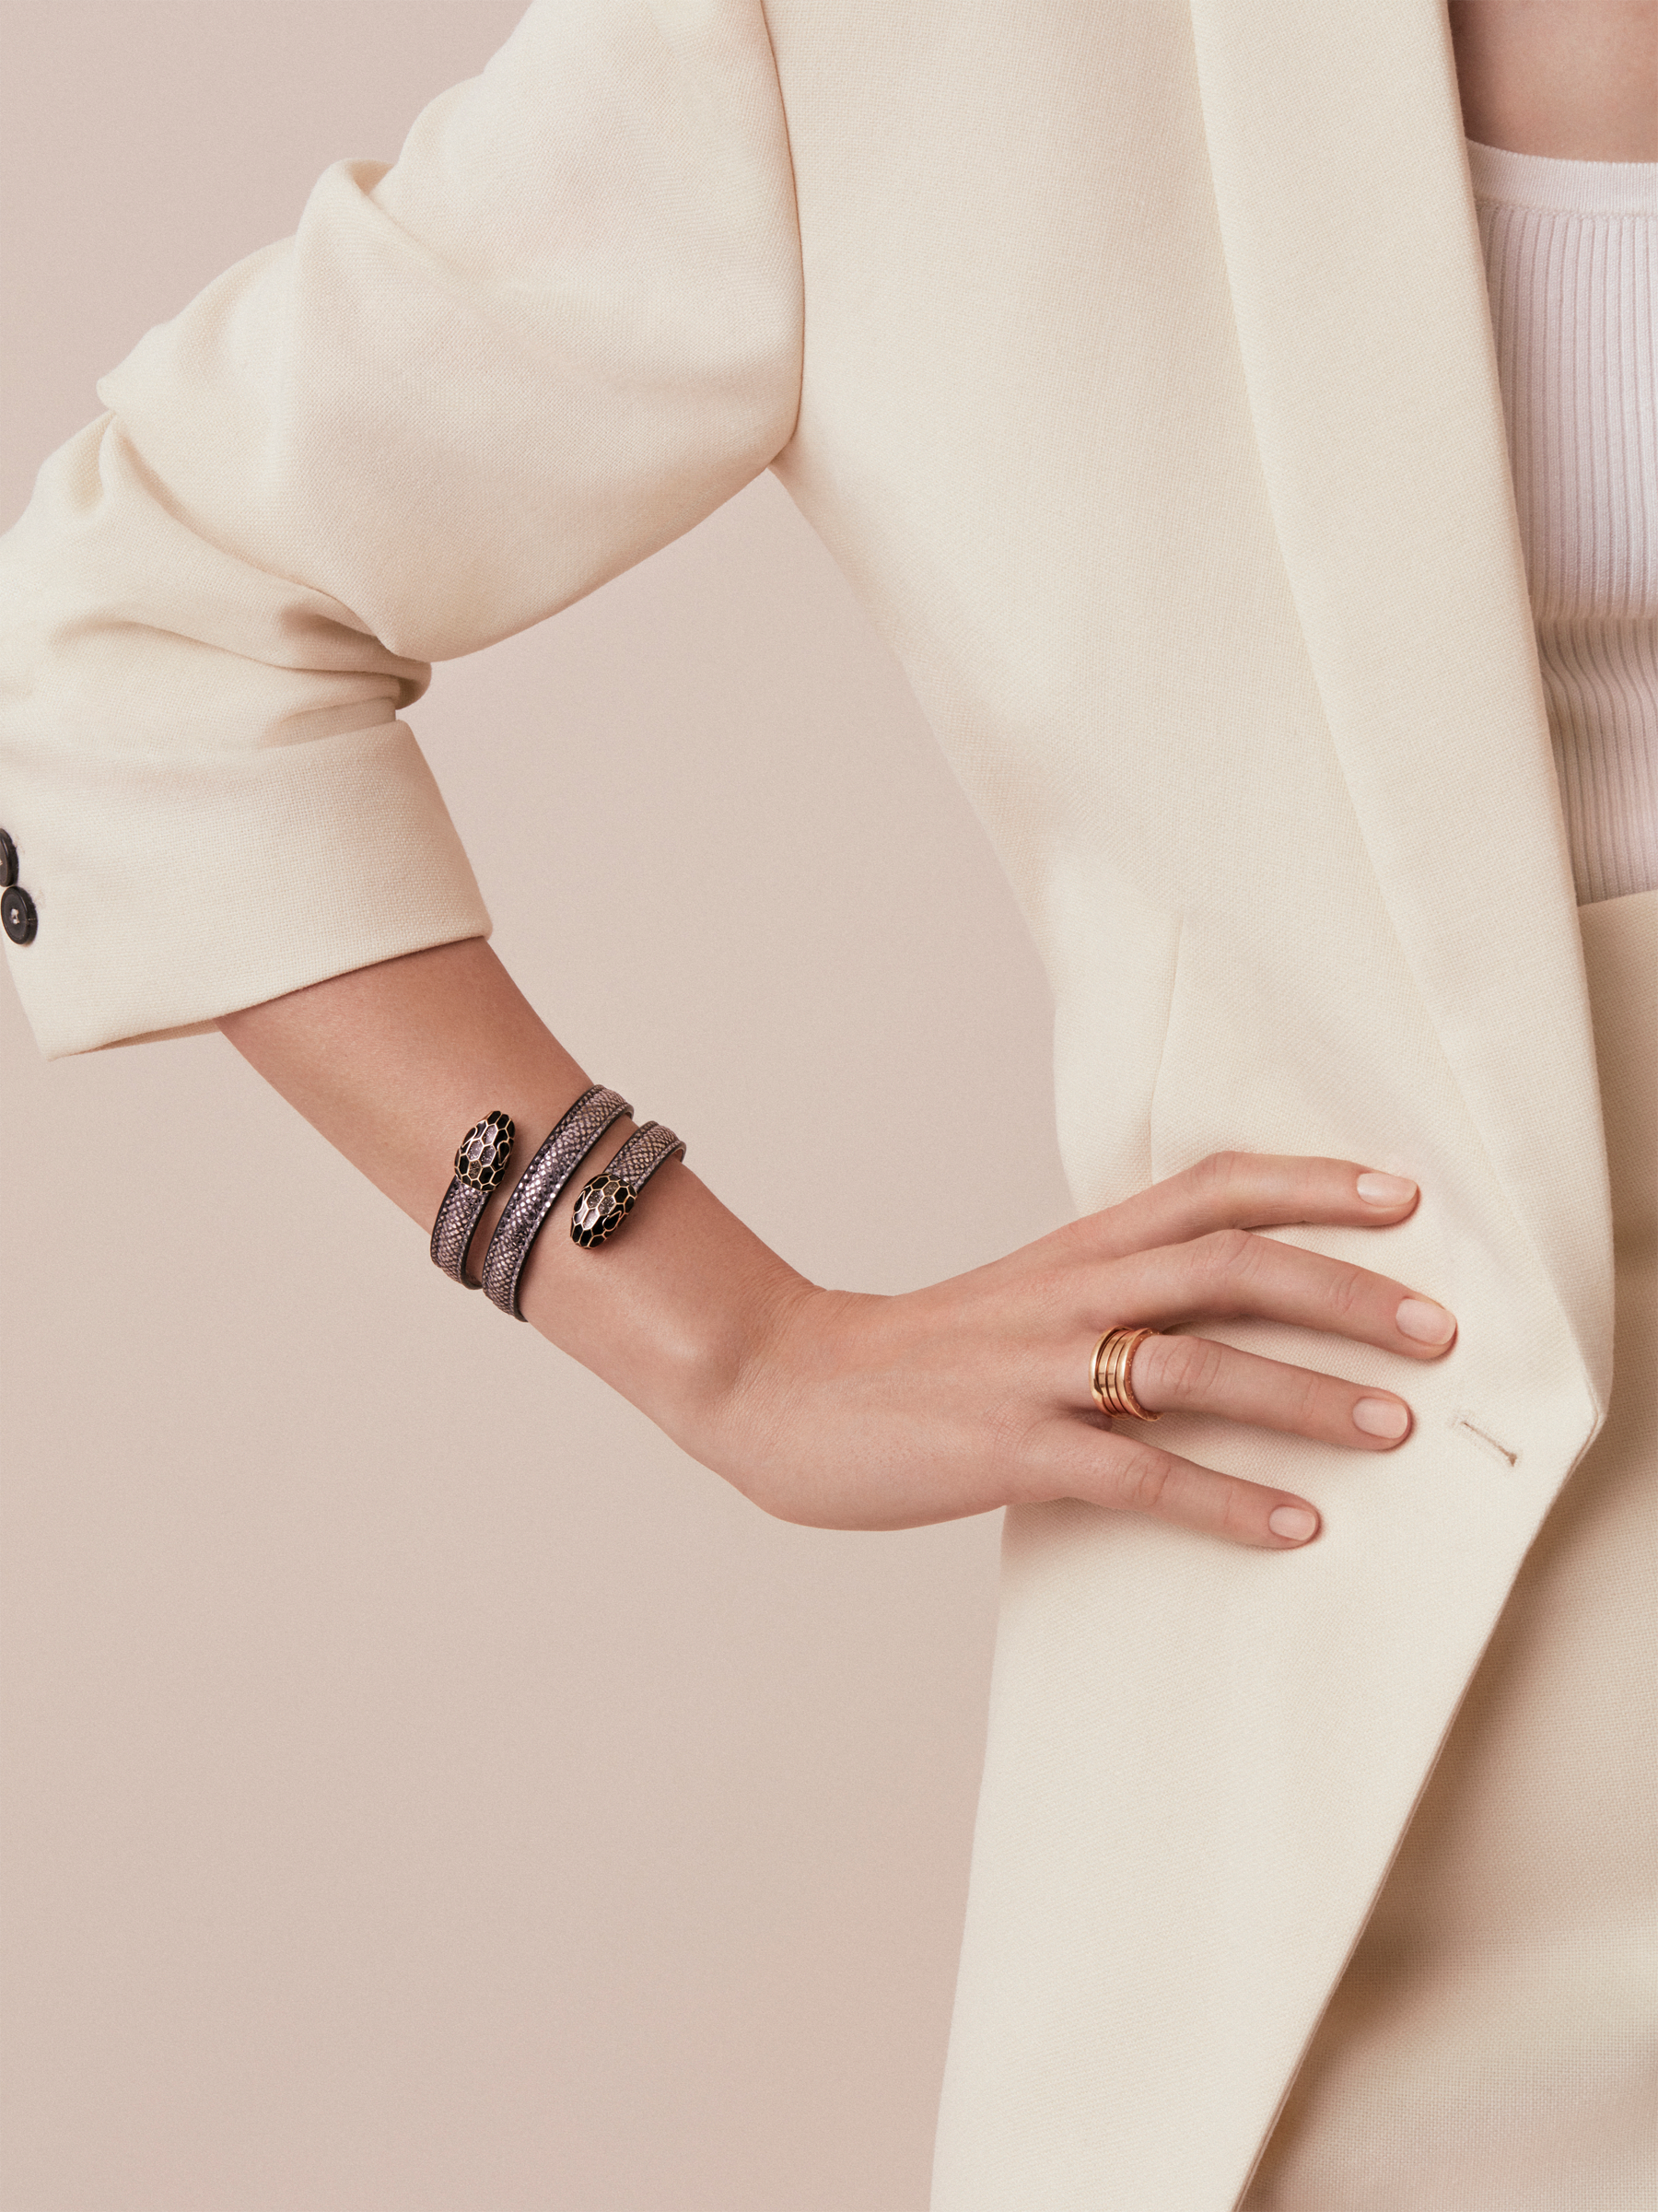 Serpenti Forever multi-coiled rigid Cleopatra bracelet in charcoal diamond metallic karung skin, with brass light gold plated hardware. Iconic double snakehead décor in black and glitter charcoal diamond enamel, with black enamel eyes. Cleopatra-MK-CD image 2